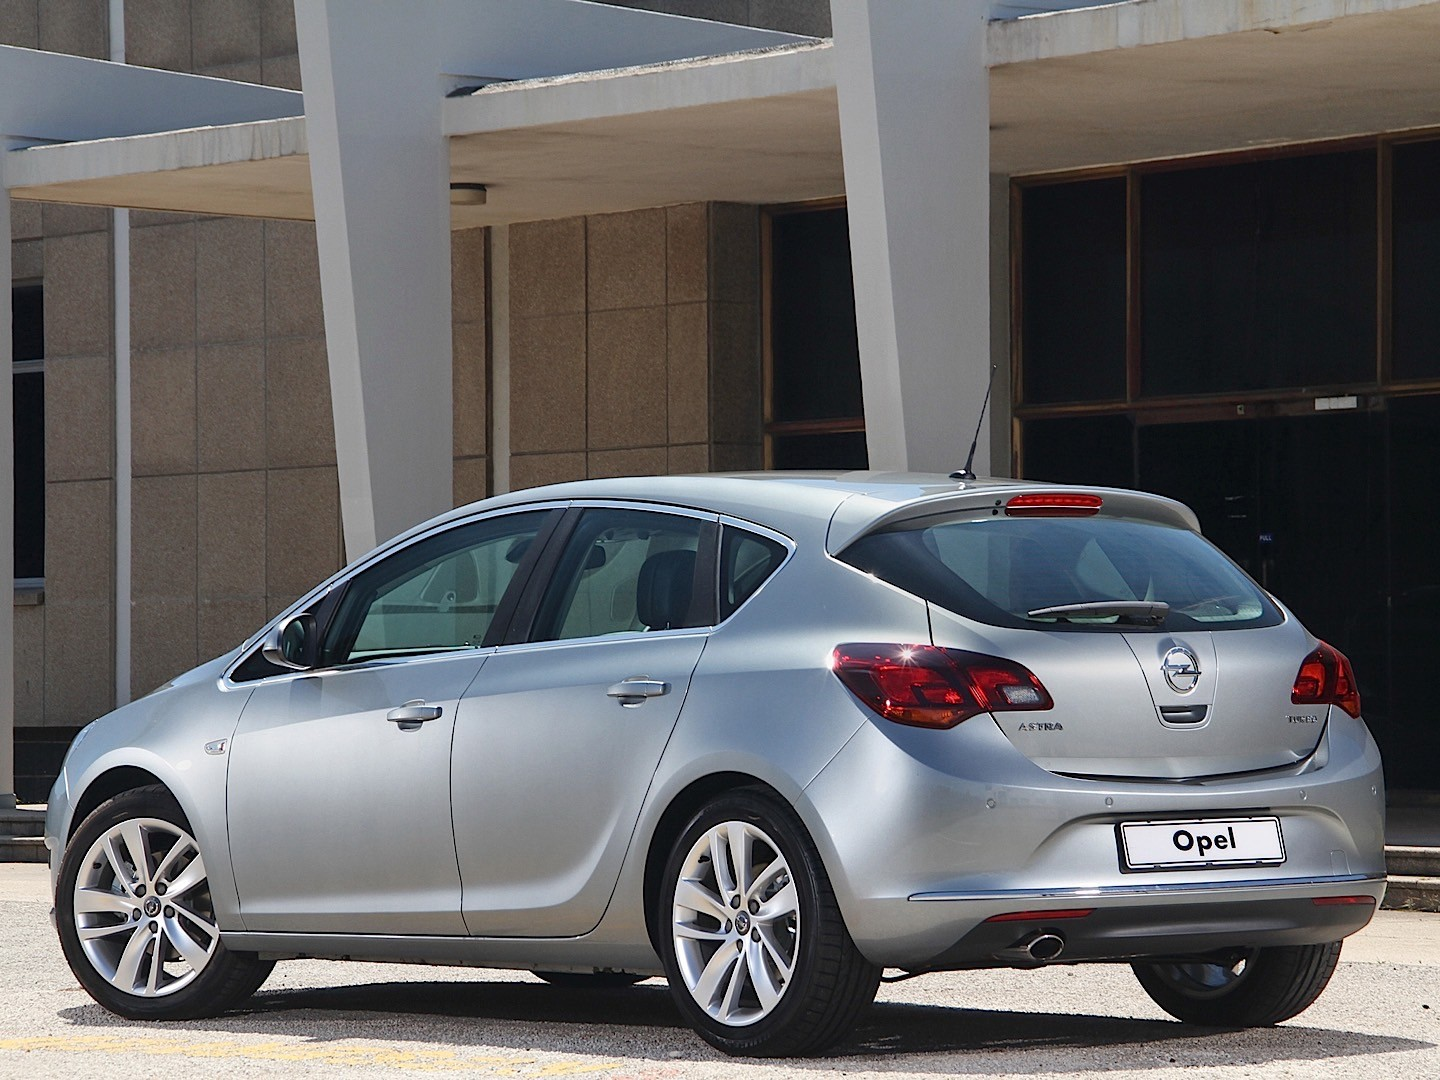 Opel Astra J 2009 - 2012 Hatchback 5 door #5 & Opel Astra J 2009 - 2012 Hatchback 5 door :: OUTSTANDING CARS